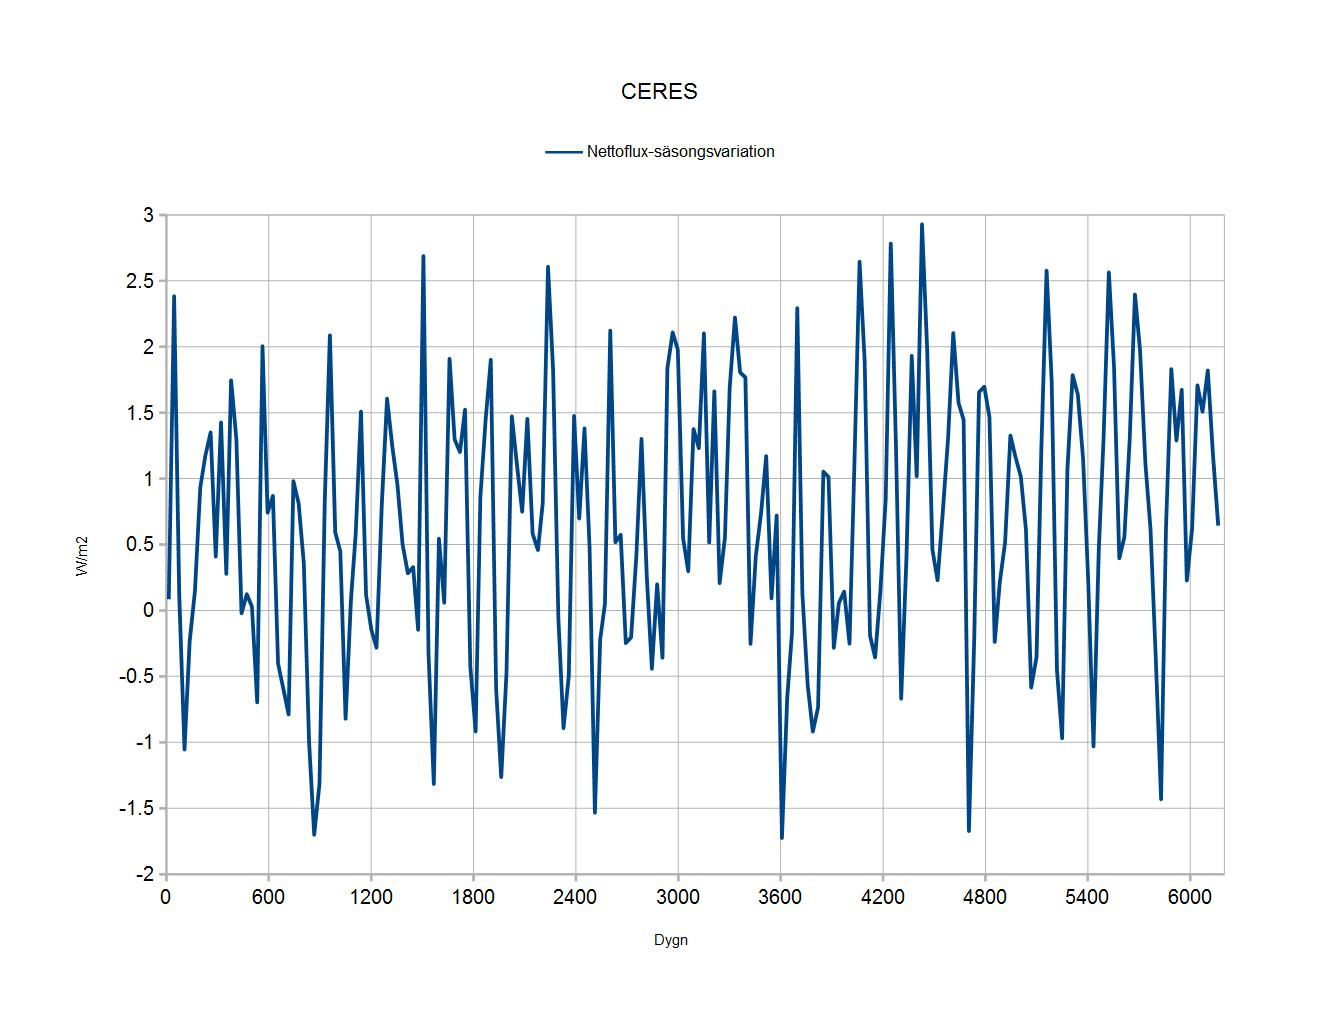 CERES_net_flux_seasons_removed